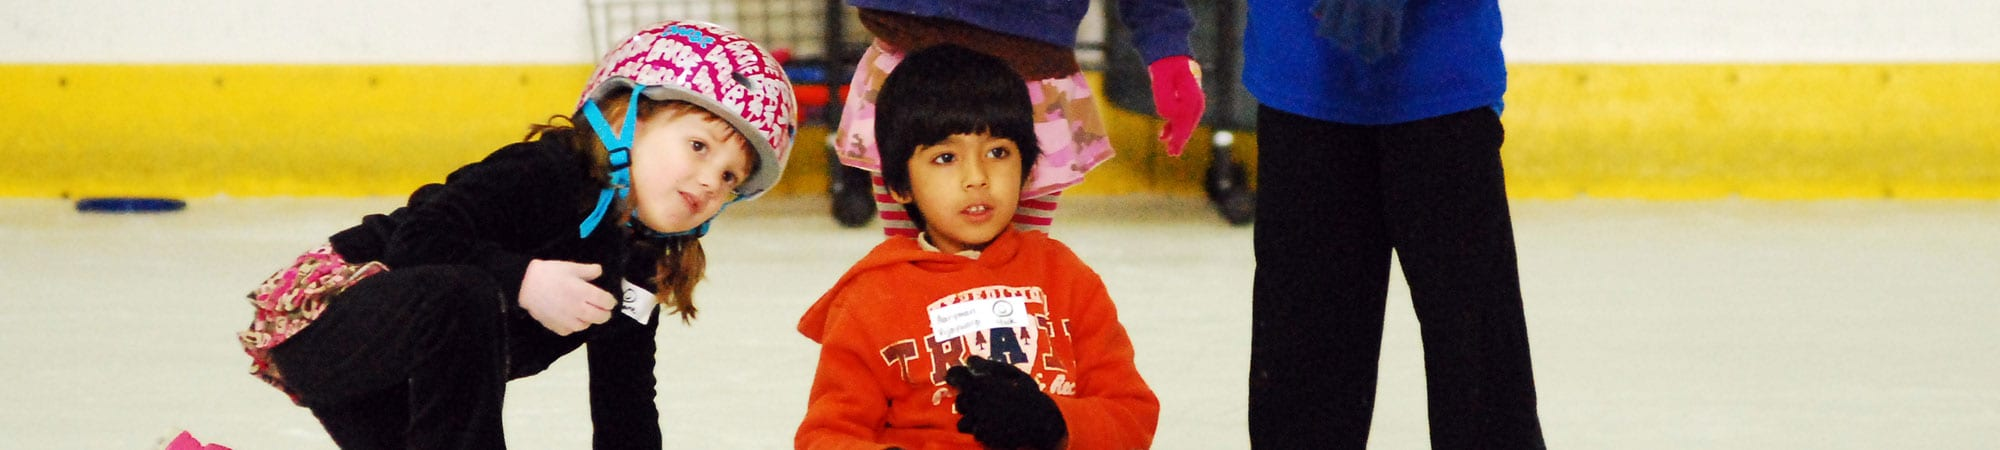 Attend a Trial Learn to Skate Class